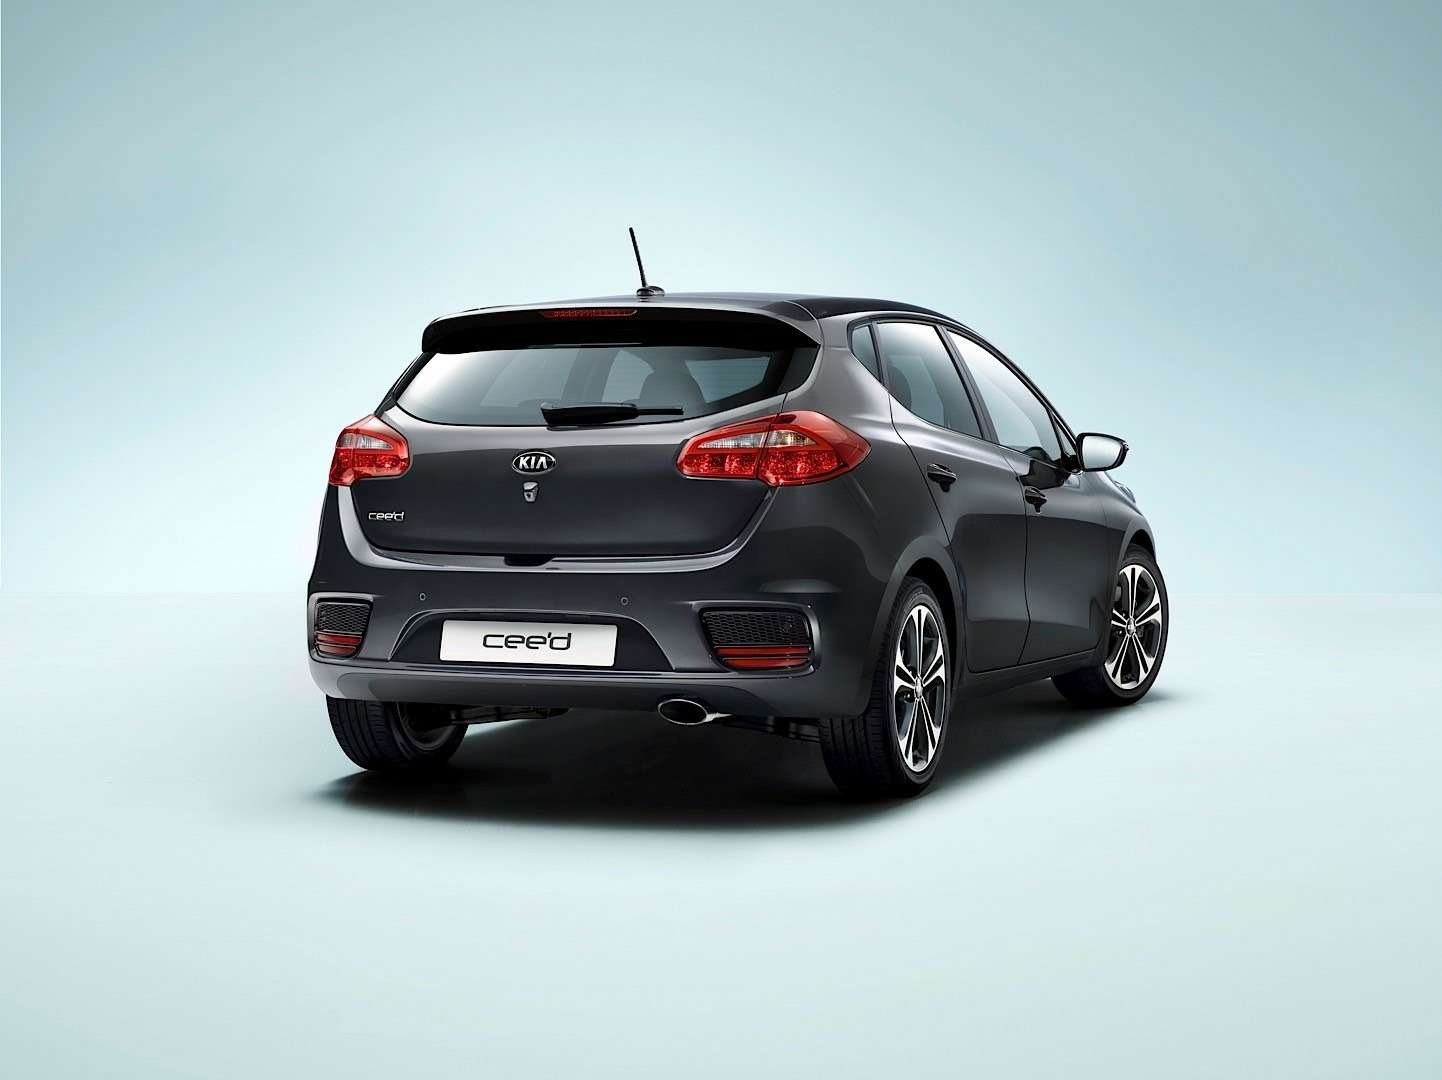 2016-kia-cee-d-brings-subtle-visual-upgrades-new-engines-and-sporty-gt-line-photo-gallery_8